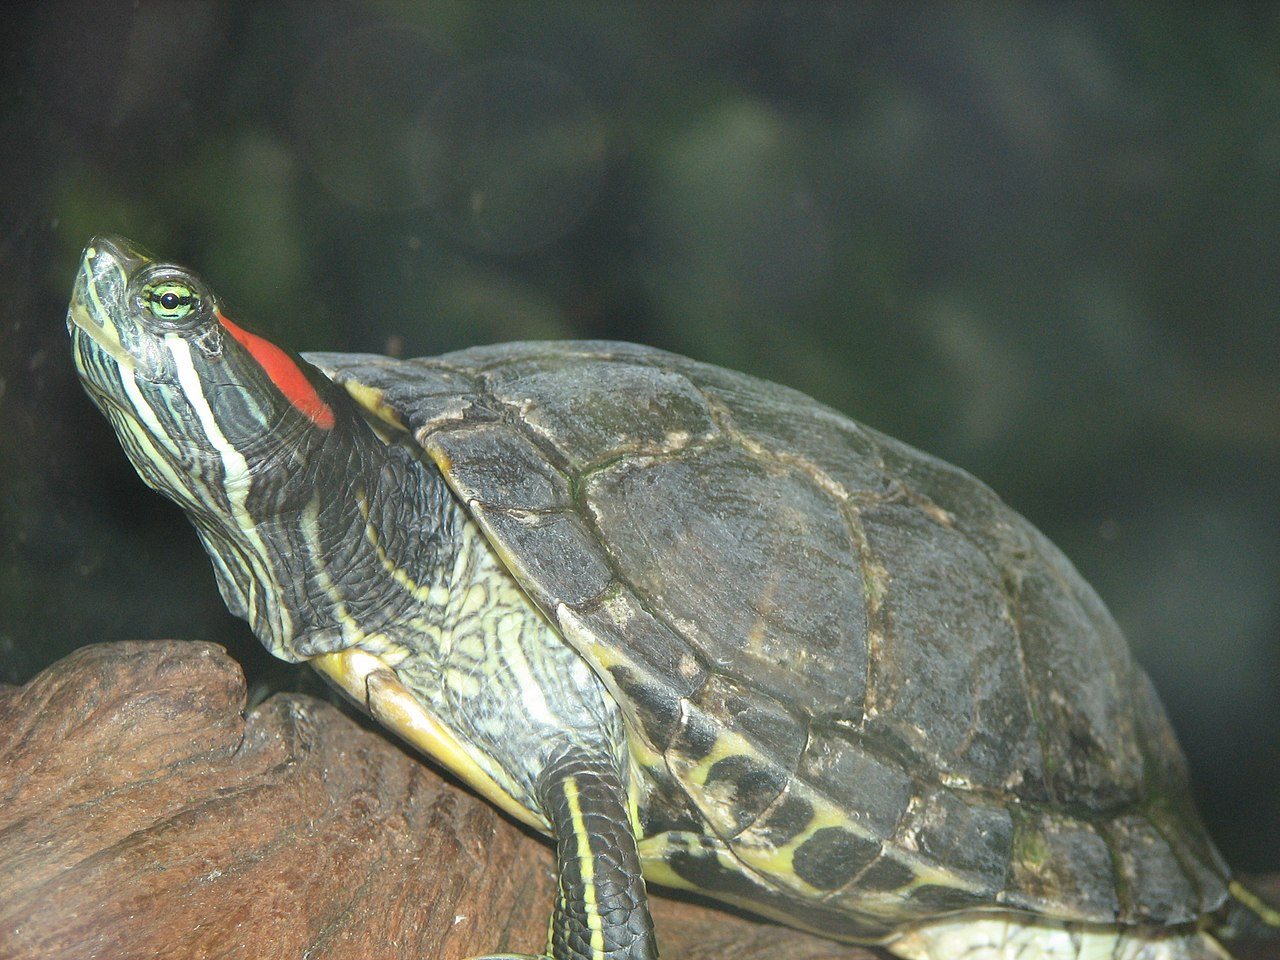 Red Eared Slider Image 001.jpg